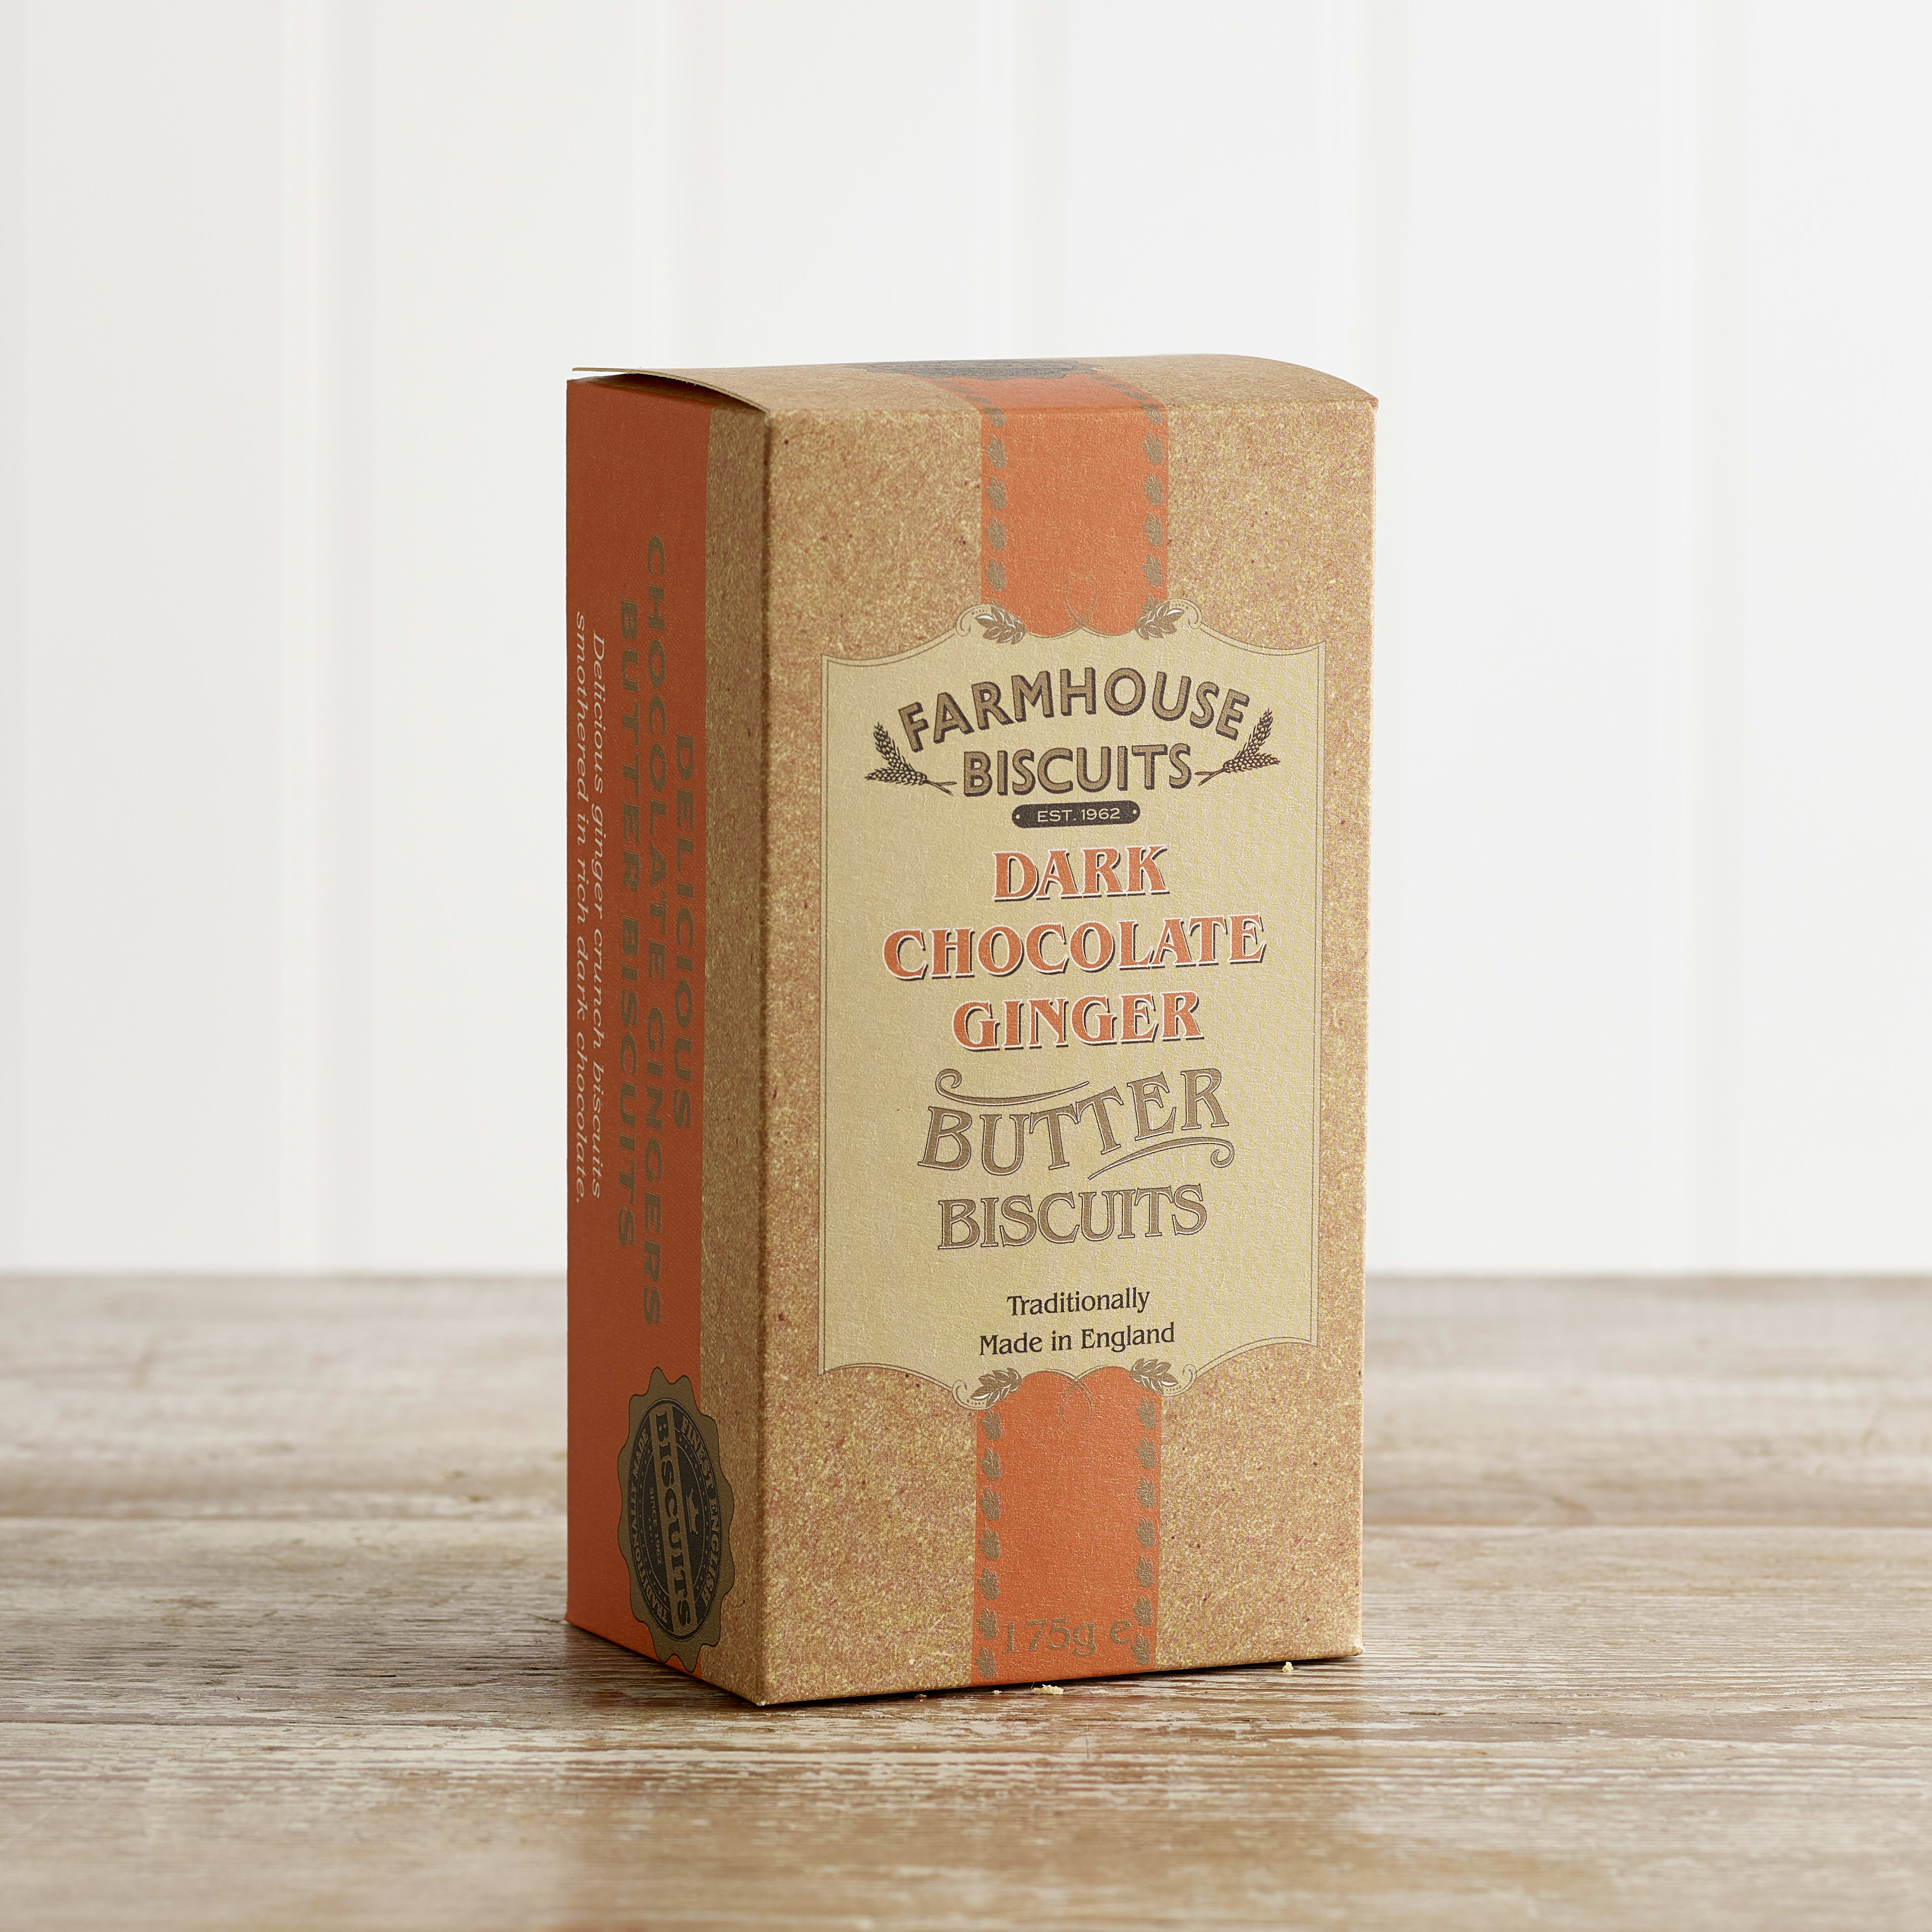 Farmhouse Dark Chocolate Coated Ginger Biscuits, 150g